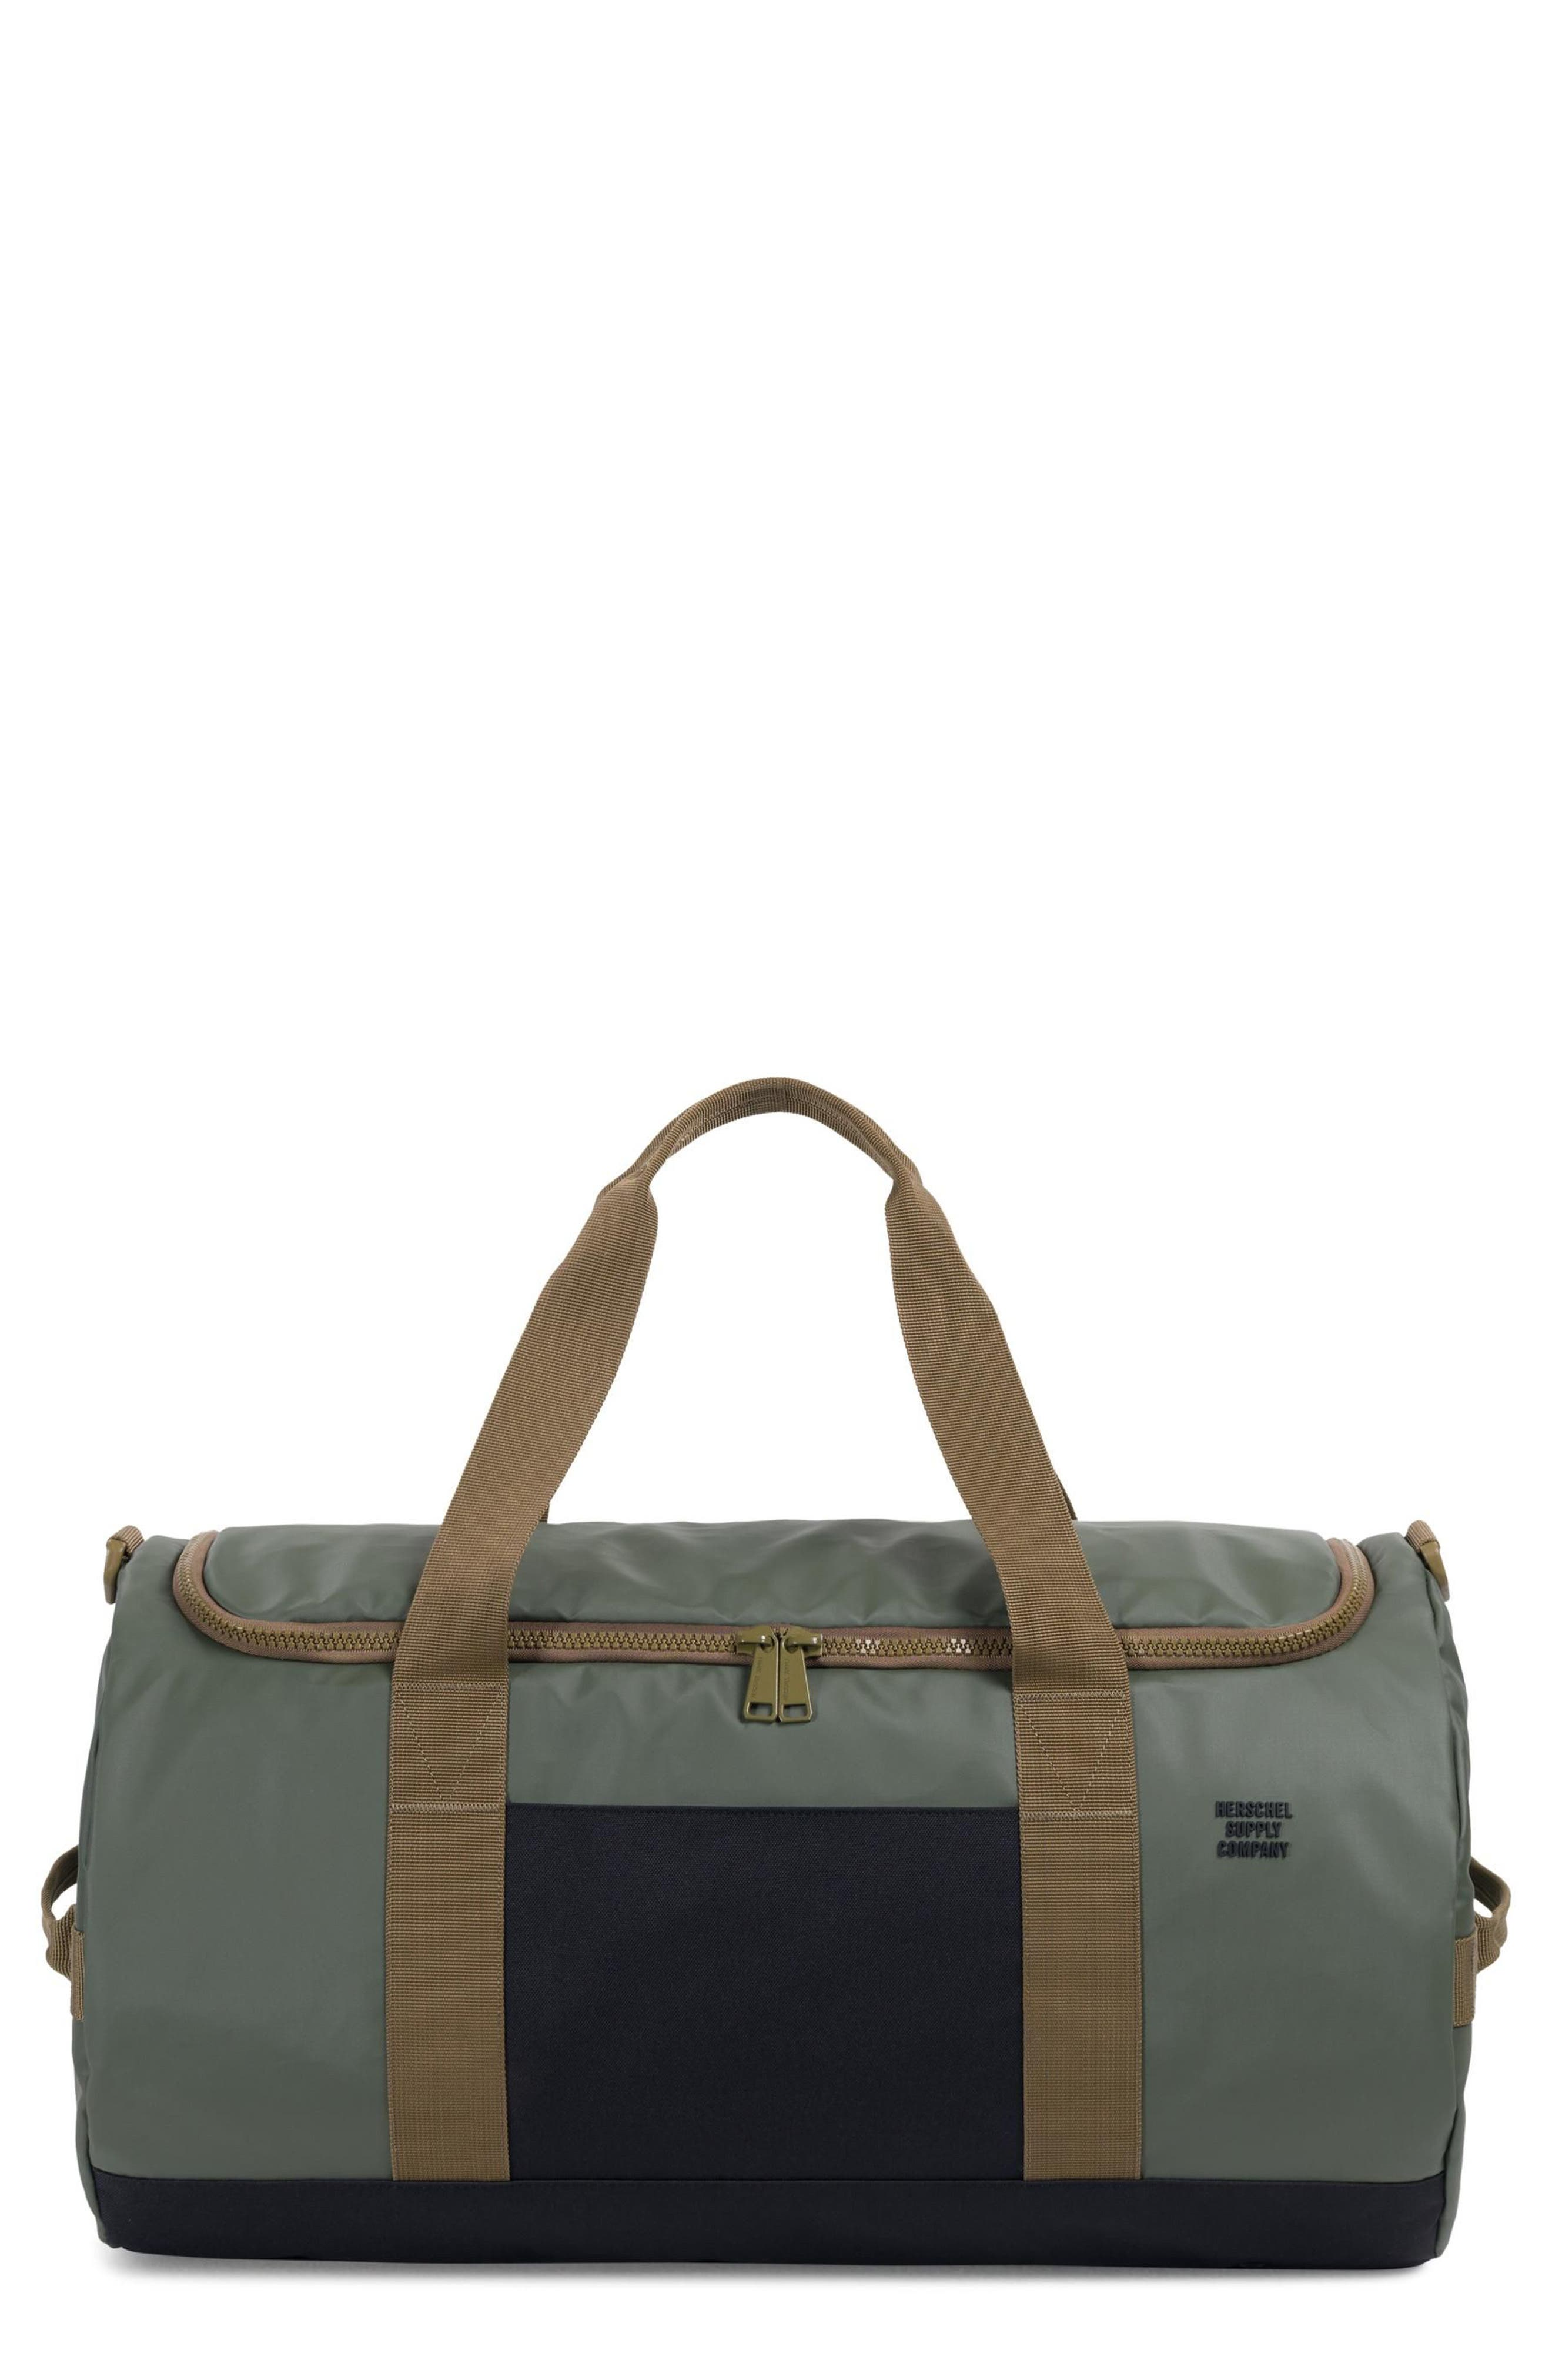 Herschel Supply Co. Sutton Polycoat Studio Duffel Bag